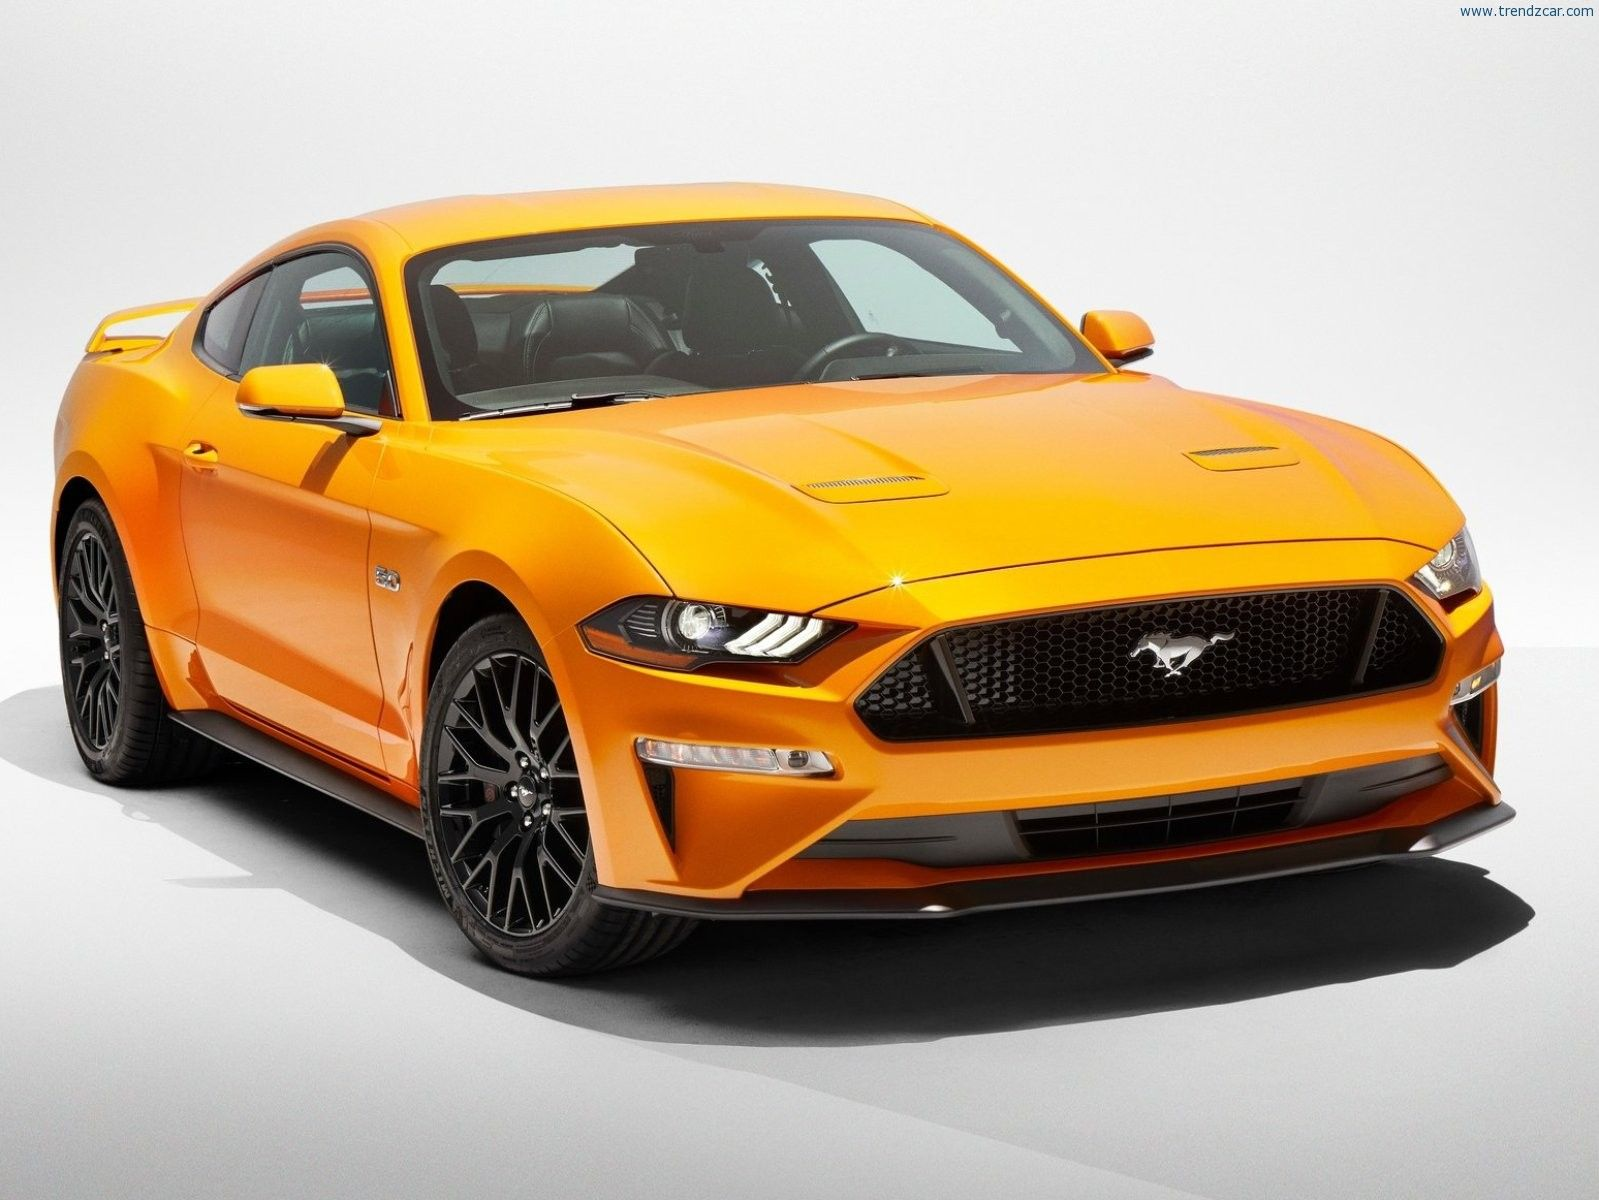 The new 2018 ford mustang gt appear based on consumer preferences even better performance from more powerful engines and new magneride suspension technol